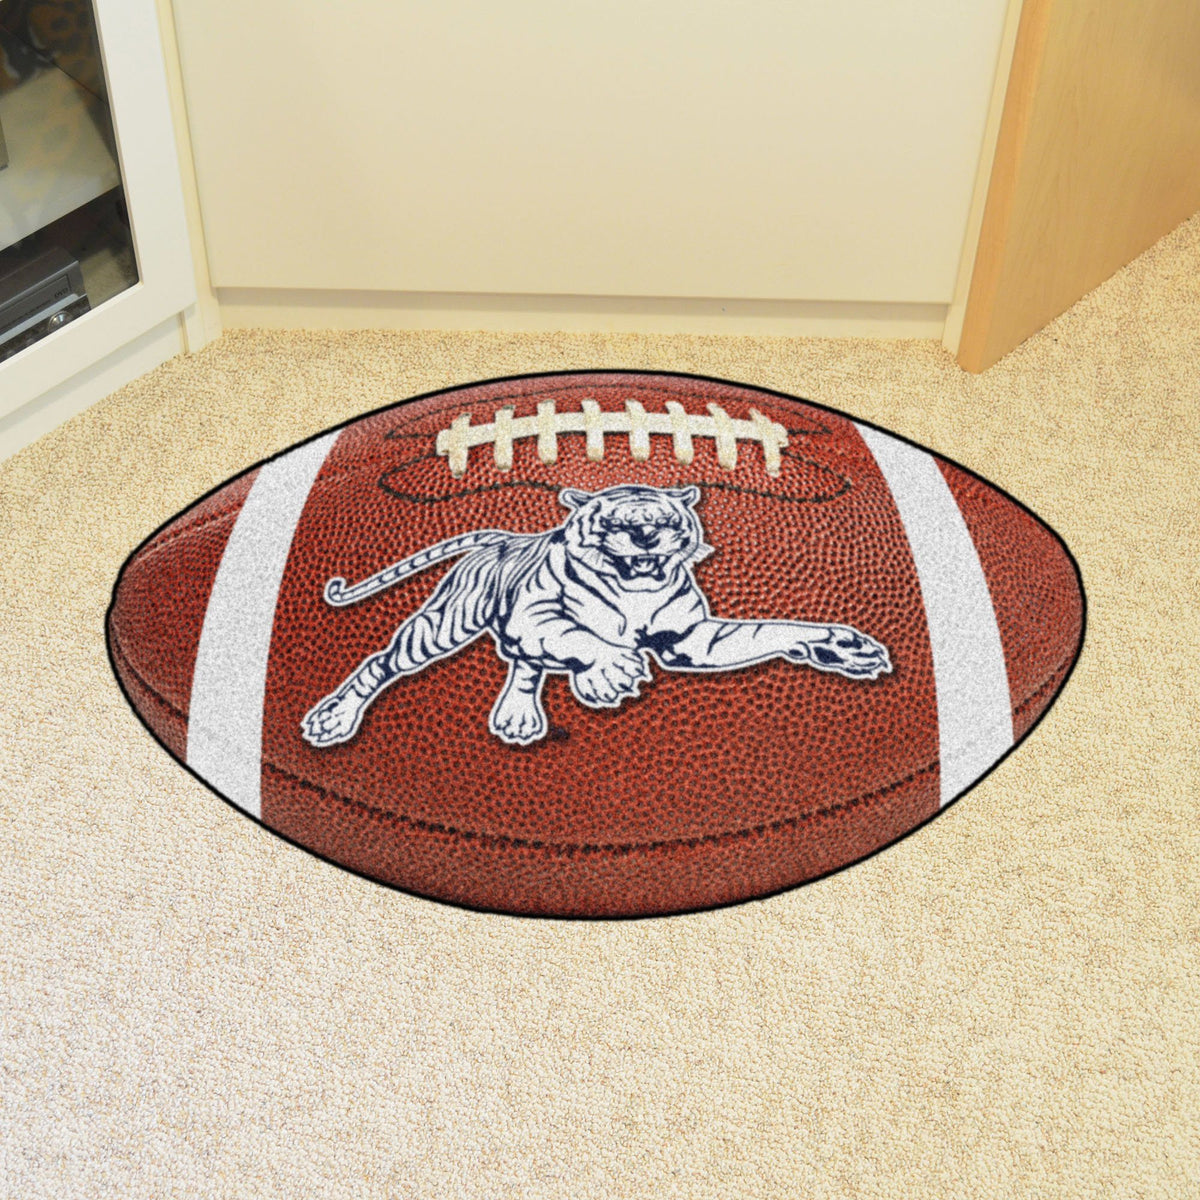 Collegiate - Football Mat: A - K Collegiate Mats, Rectangular Mats, Football Mat, Collegiate, Home Fan Mats Jackson State